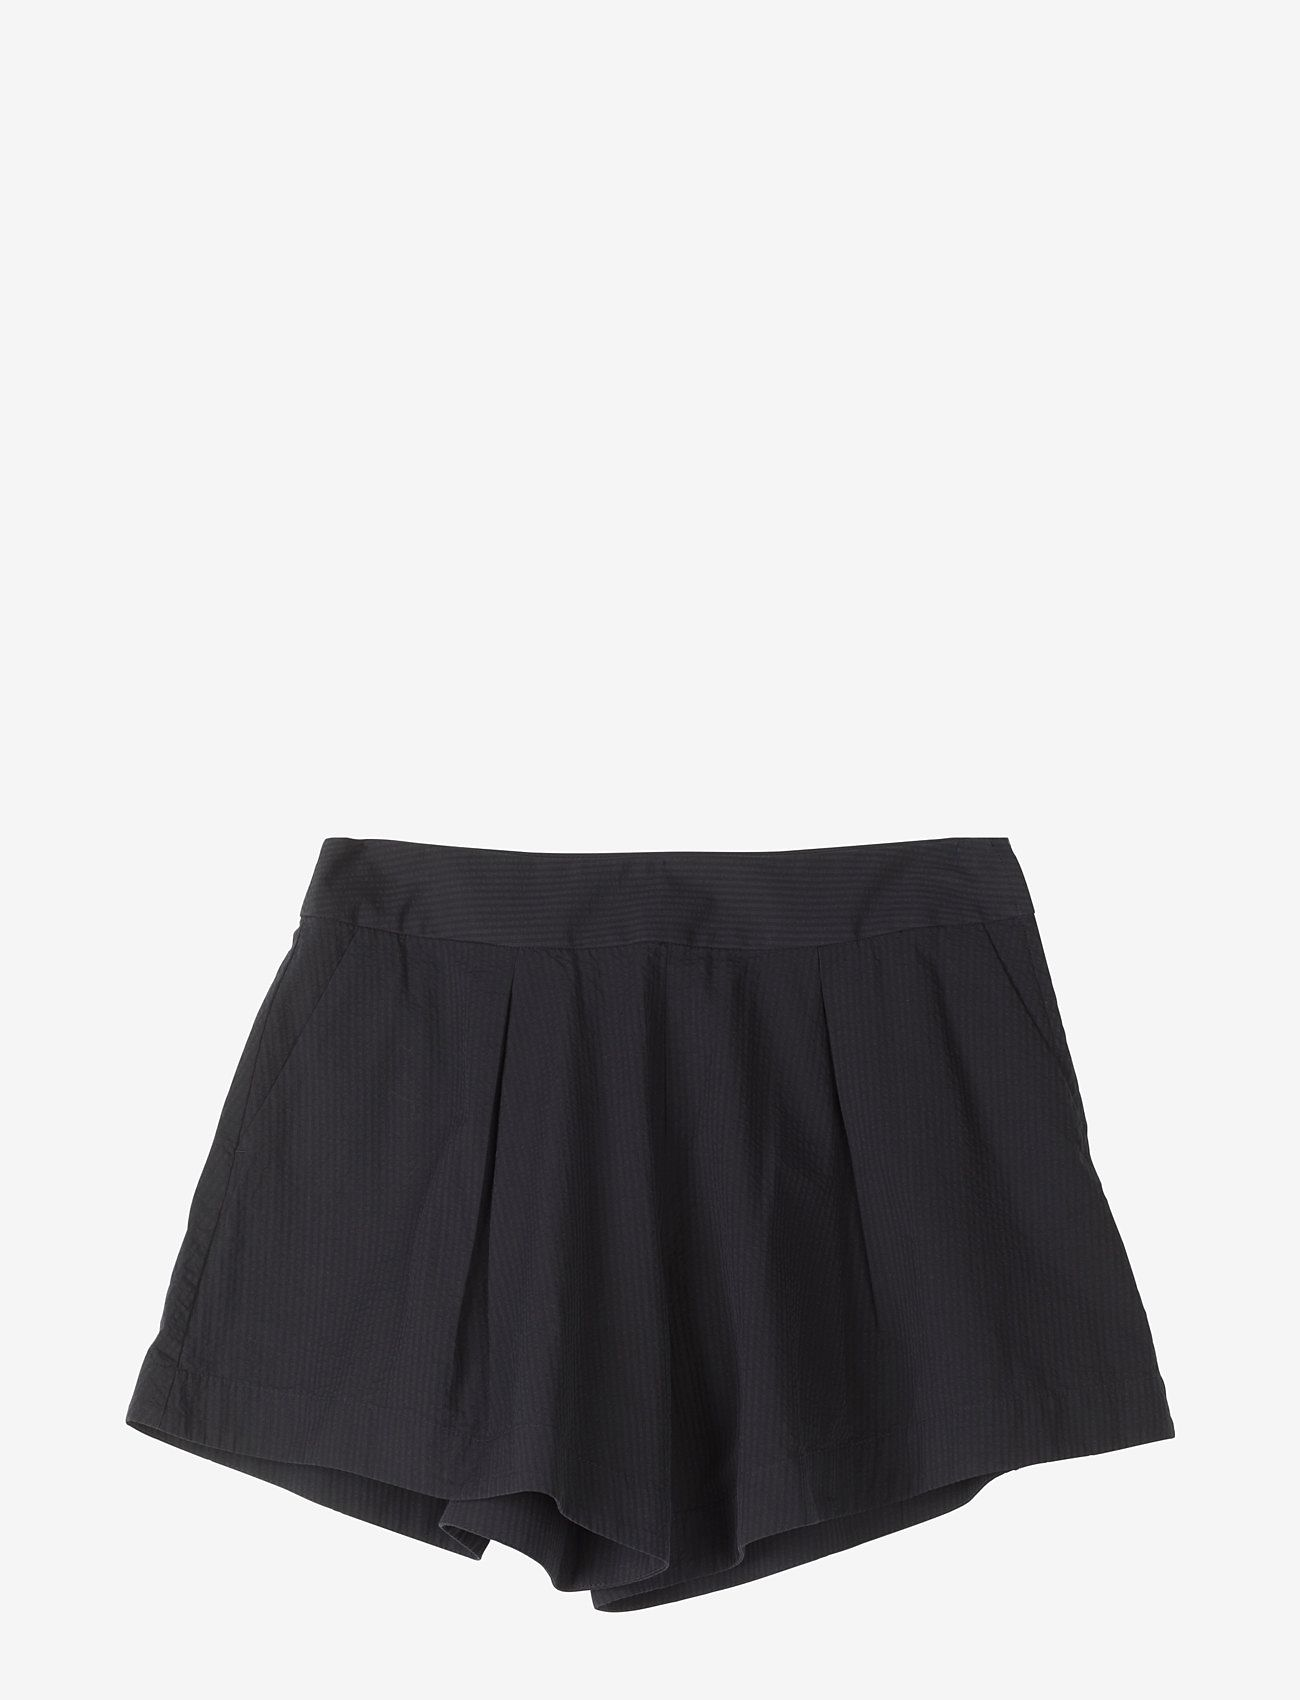 Stylein - MENDE - shorts casual - black - 1